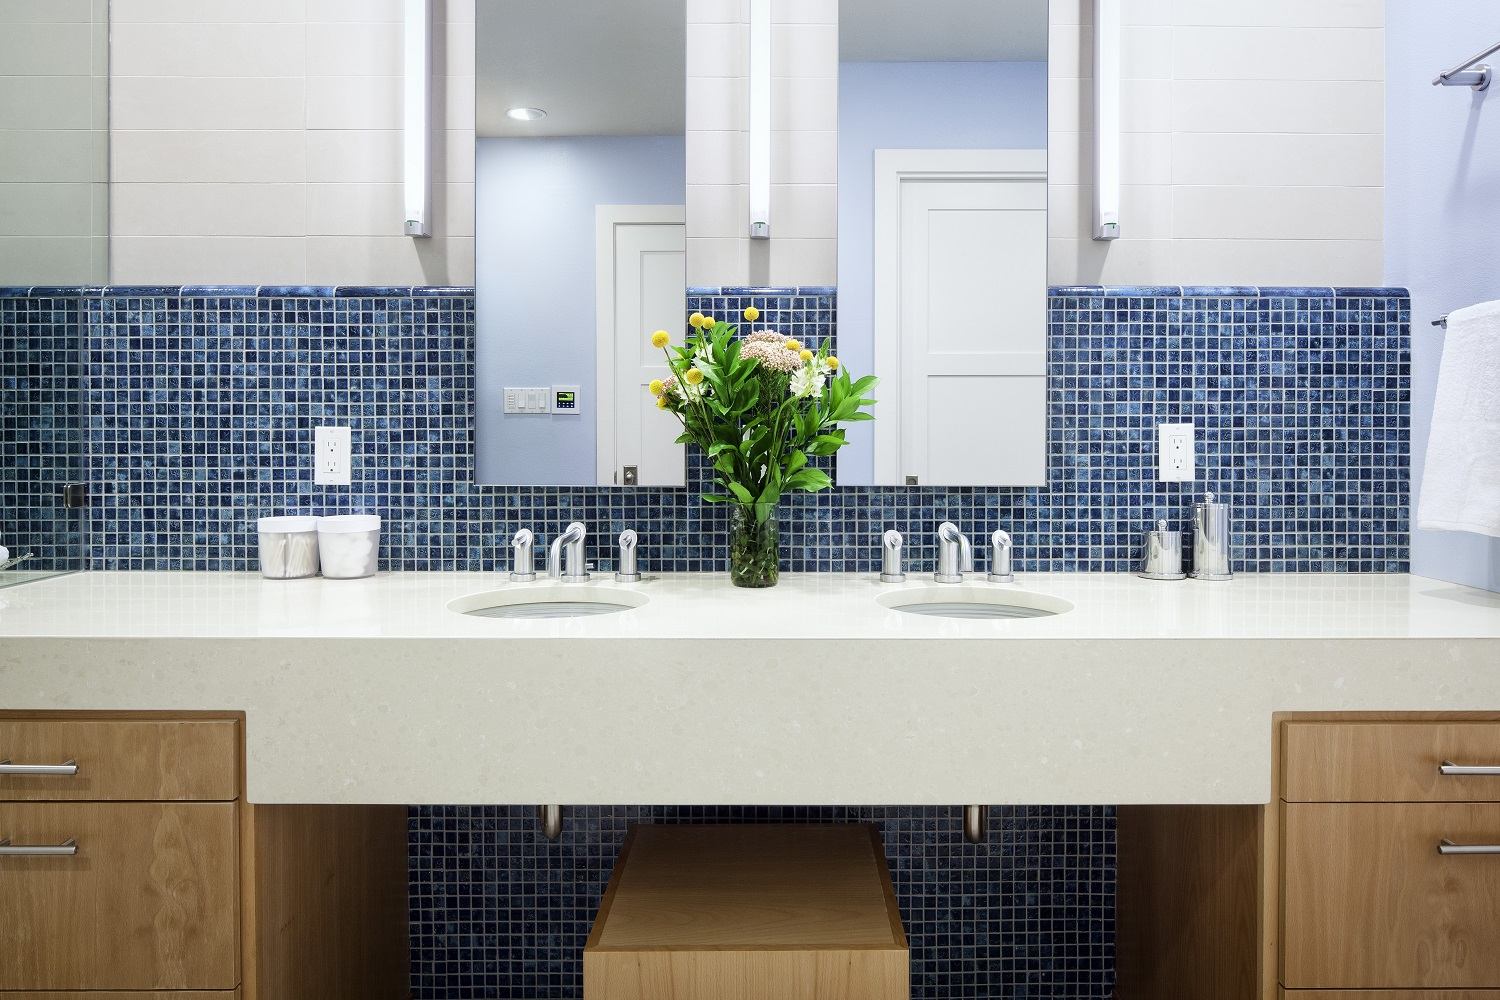 Design trends what buyers love in kitchens and baths for Trends kitchens and bathrooms